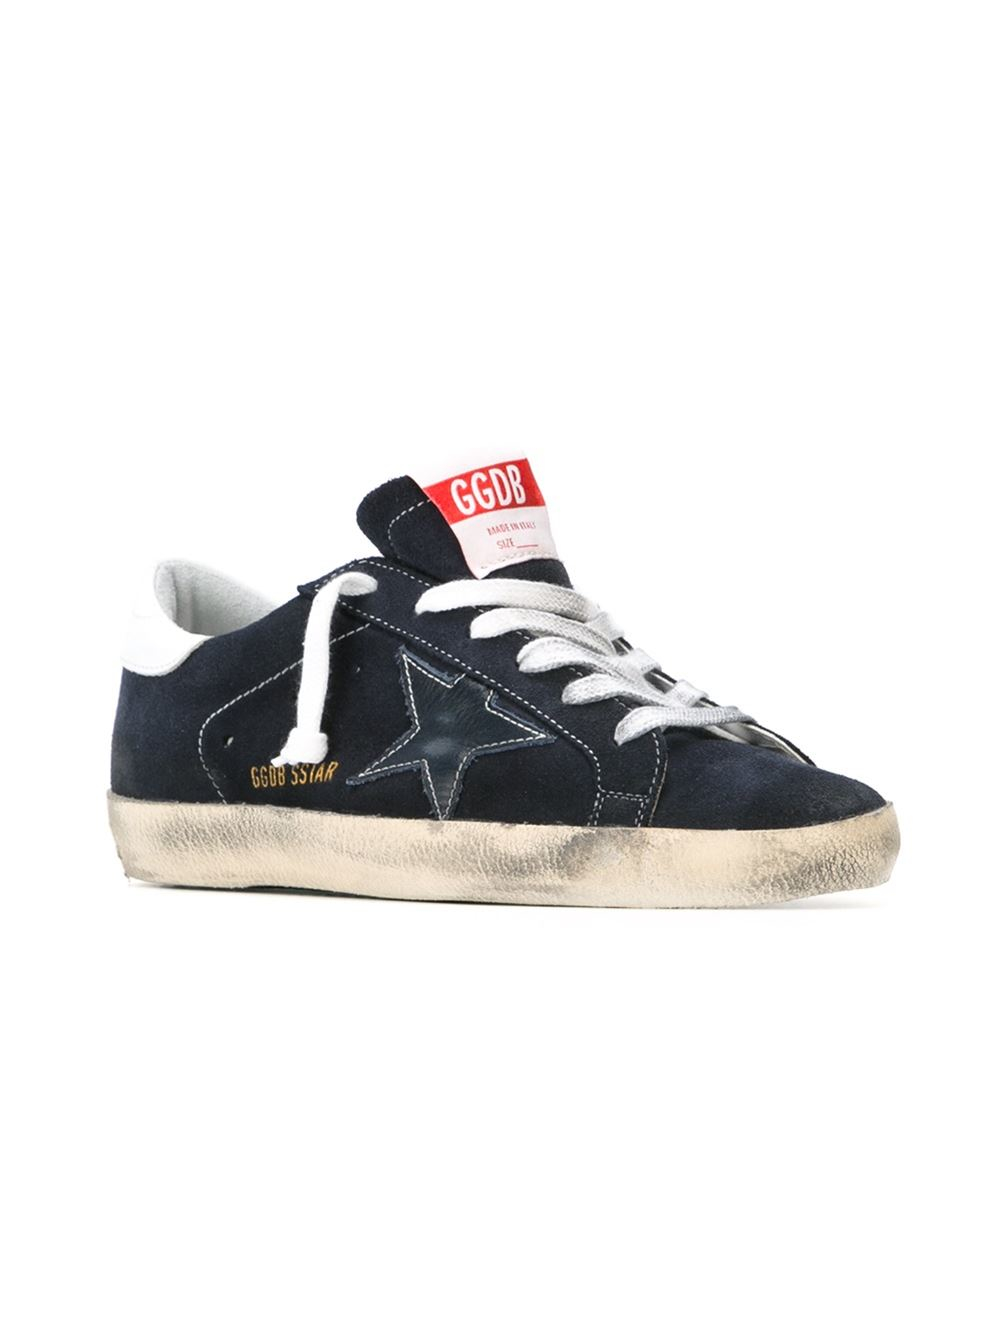 golden goose deluxe brand 39 super star 39 sneakers in blue lyst. Black Bedroom Furniture Sets. Home Design Ideas